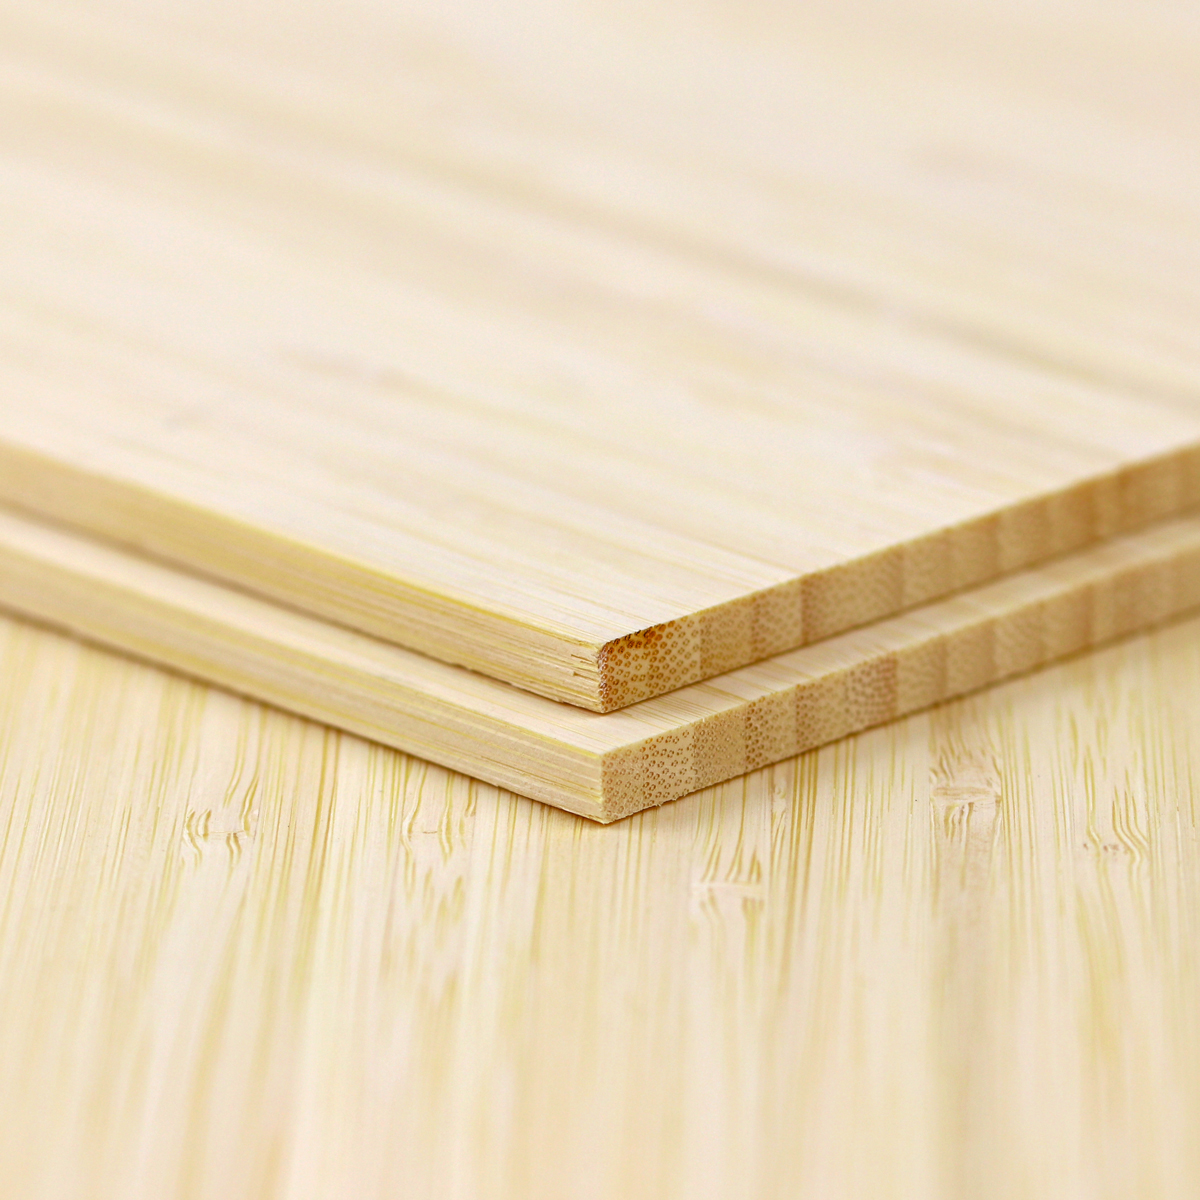 surface of natural veneer